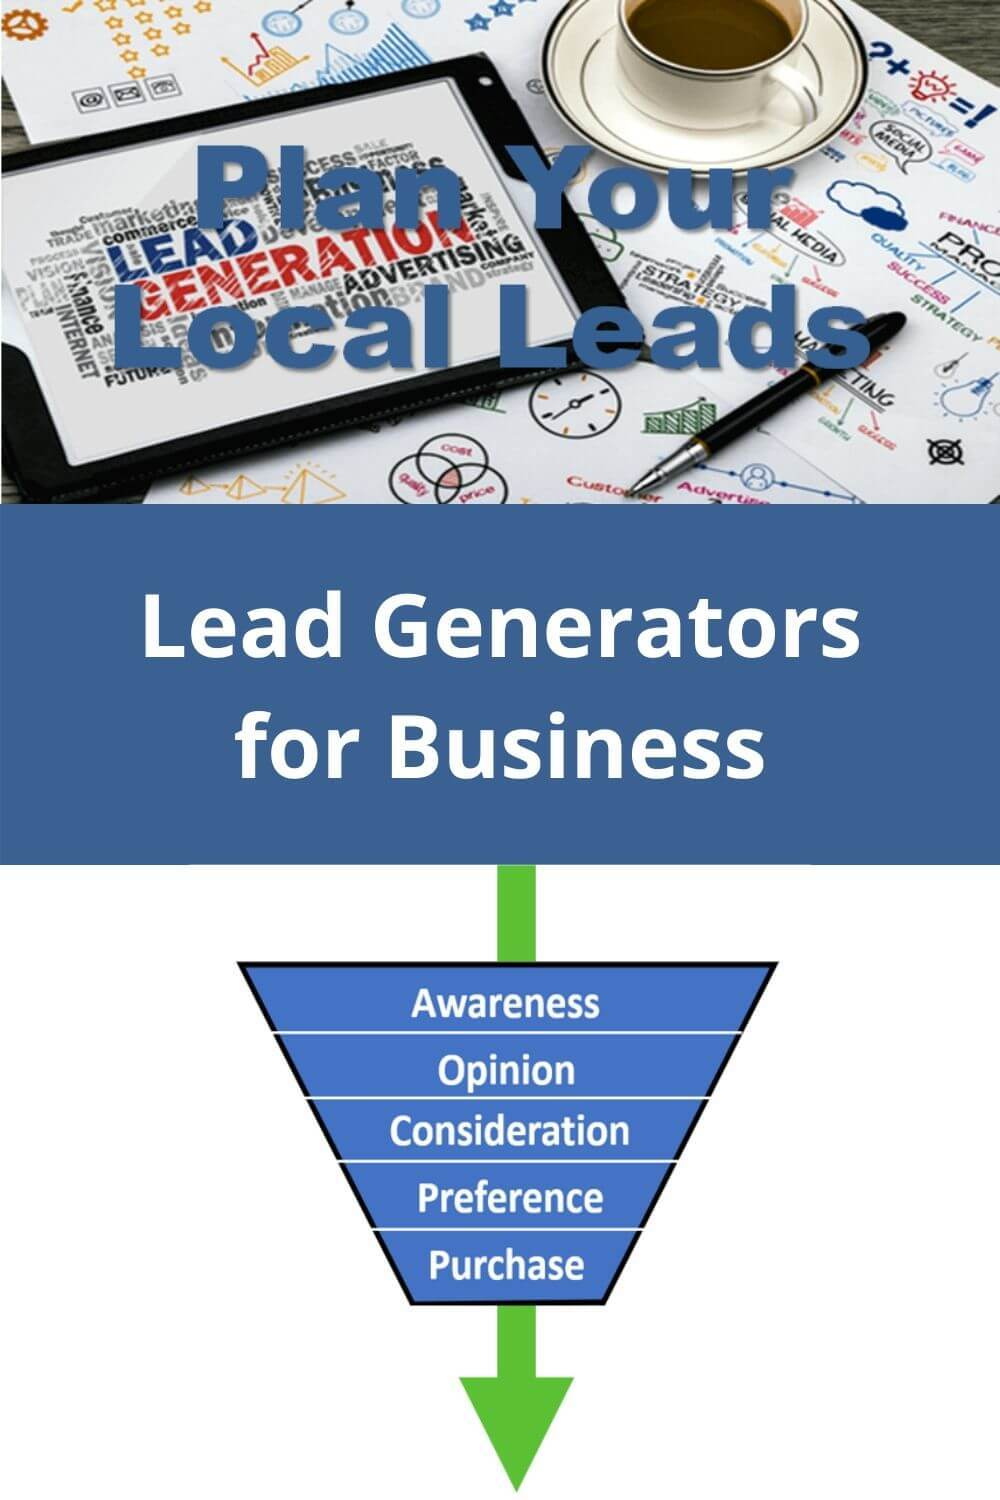 Lead Generators for Business